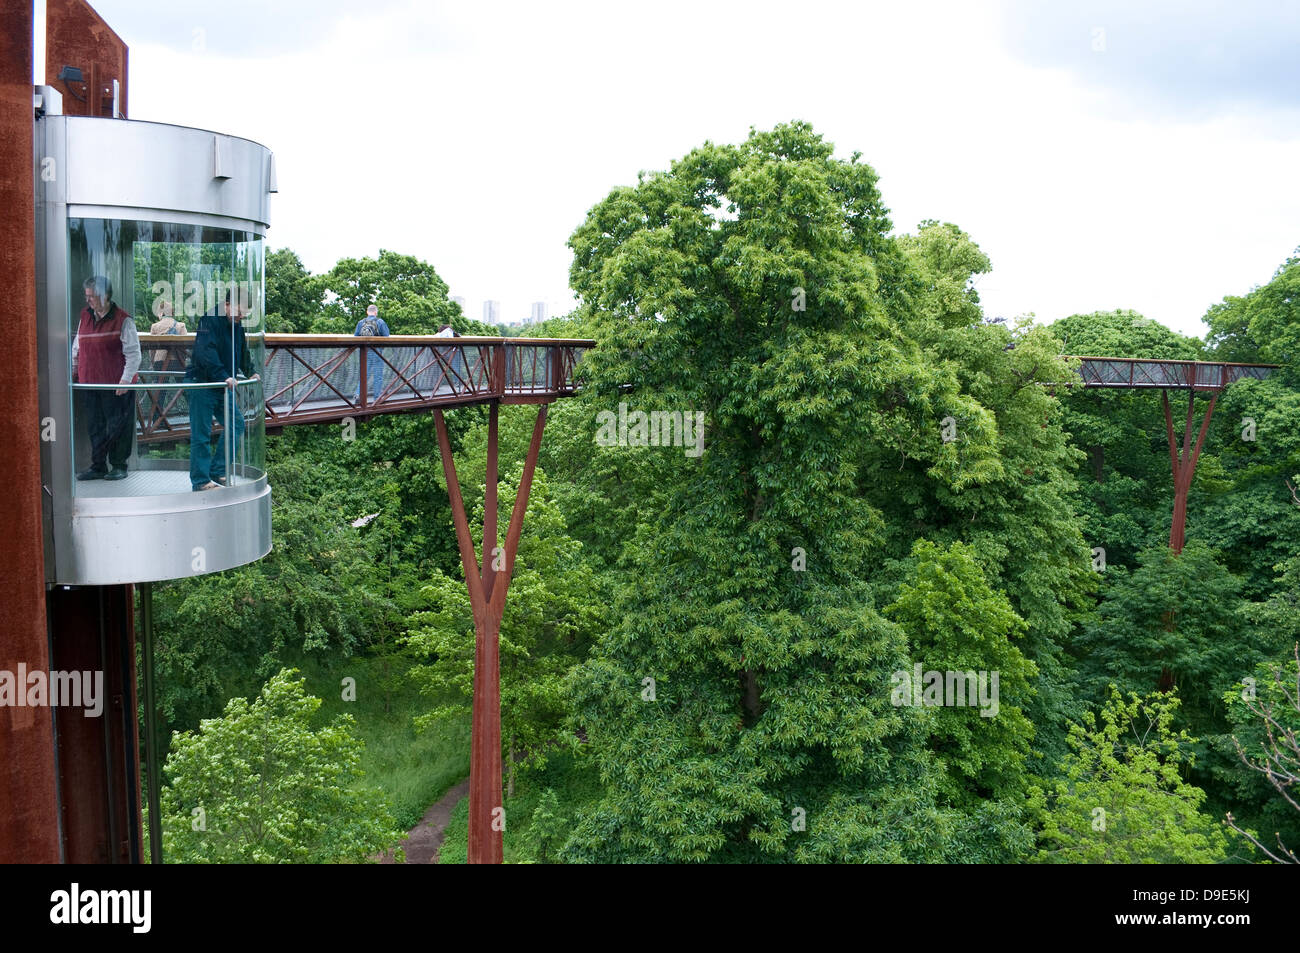 Xstrata Treetop Walkway, Kew Royal Botanic Gardens, London, UK Photo Stock